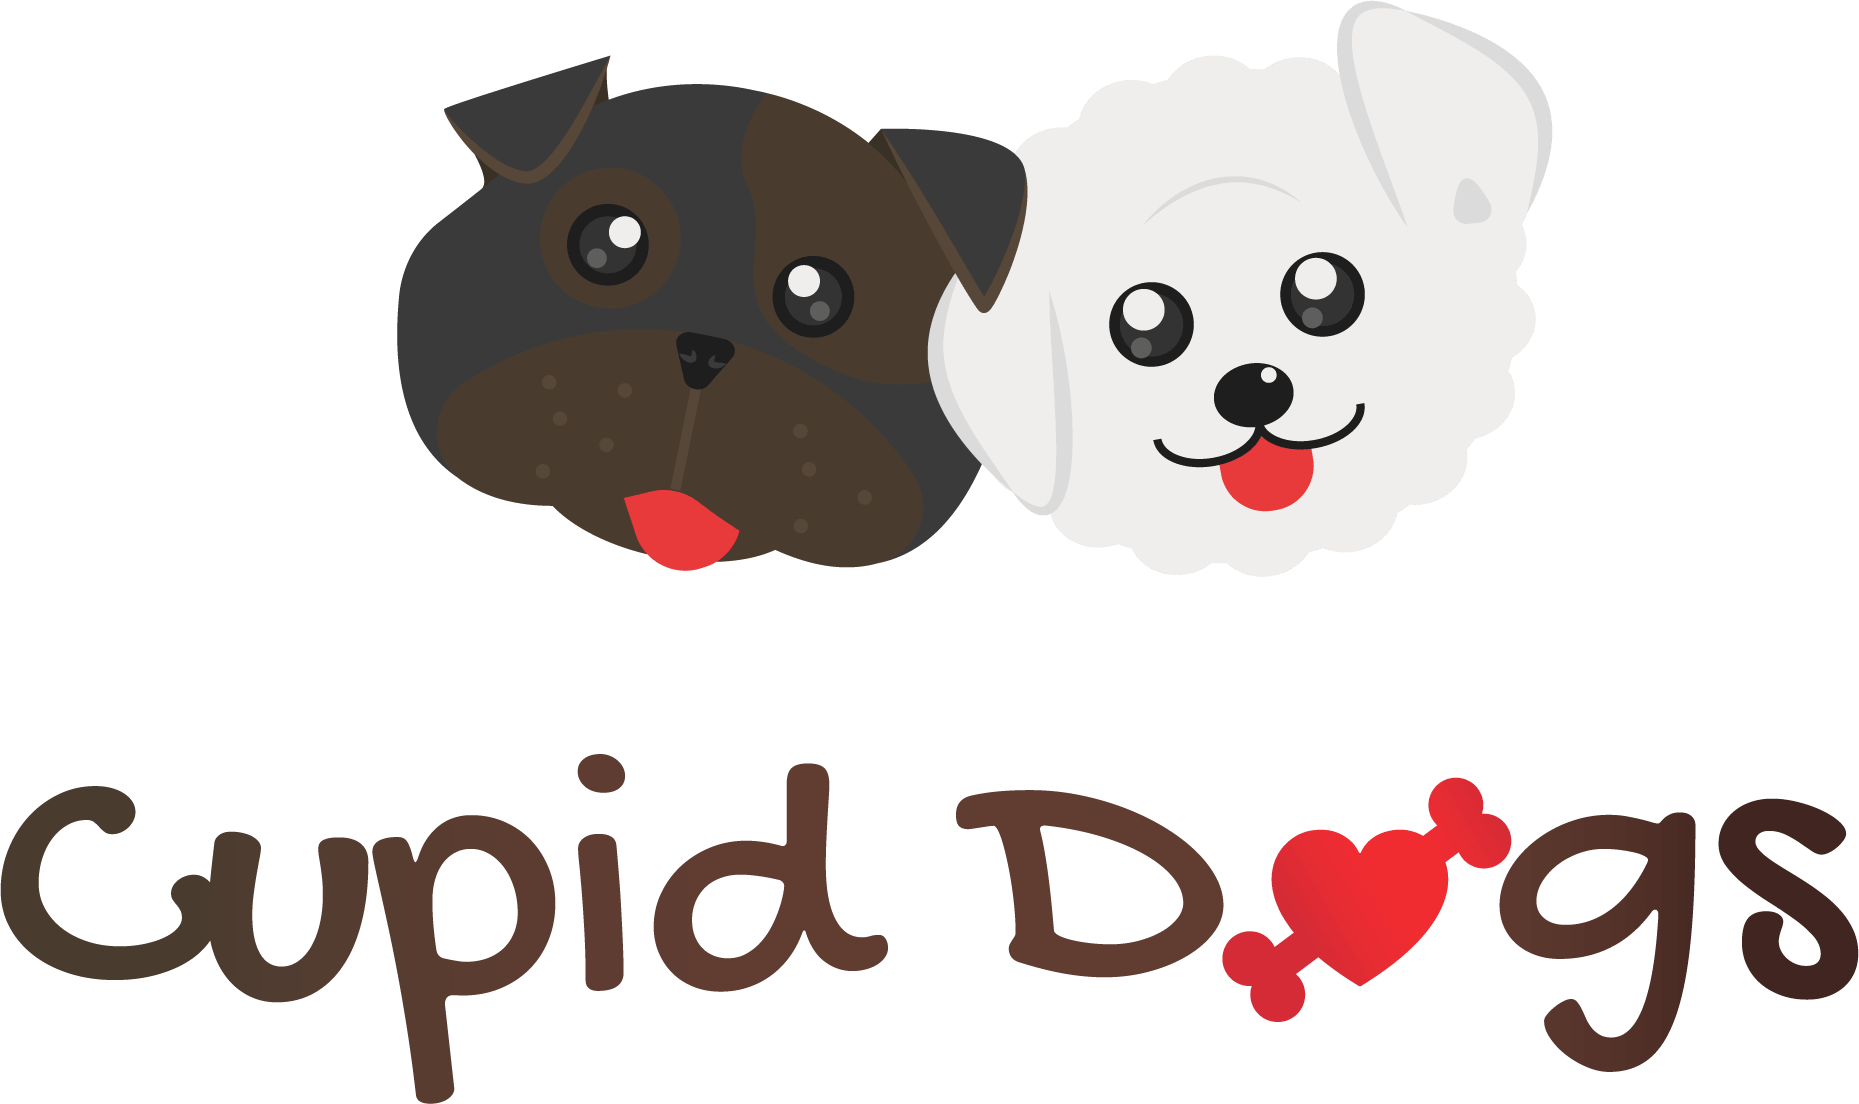 Cupid Dogs